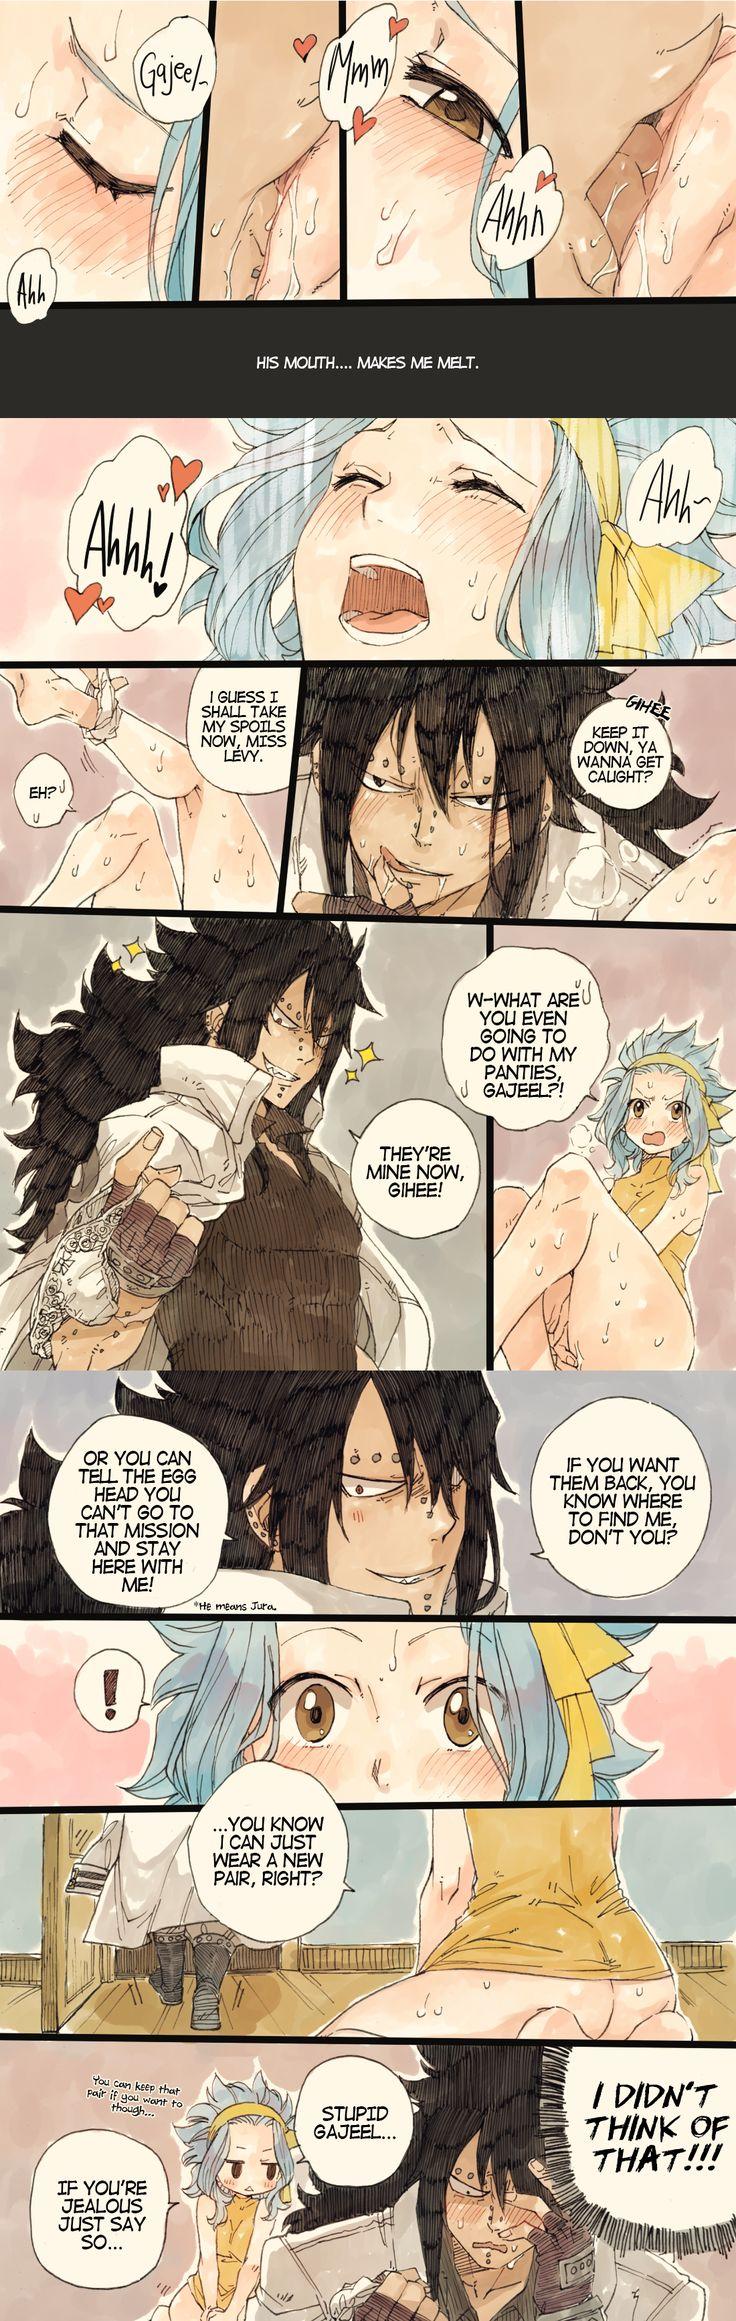 Gajeel and Levy. 3:))) xD x3